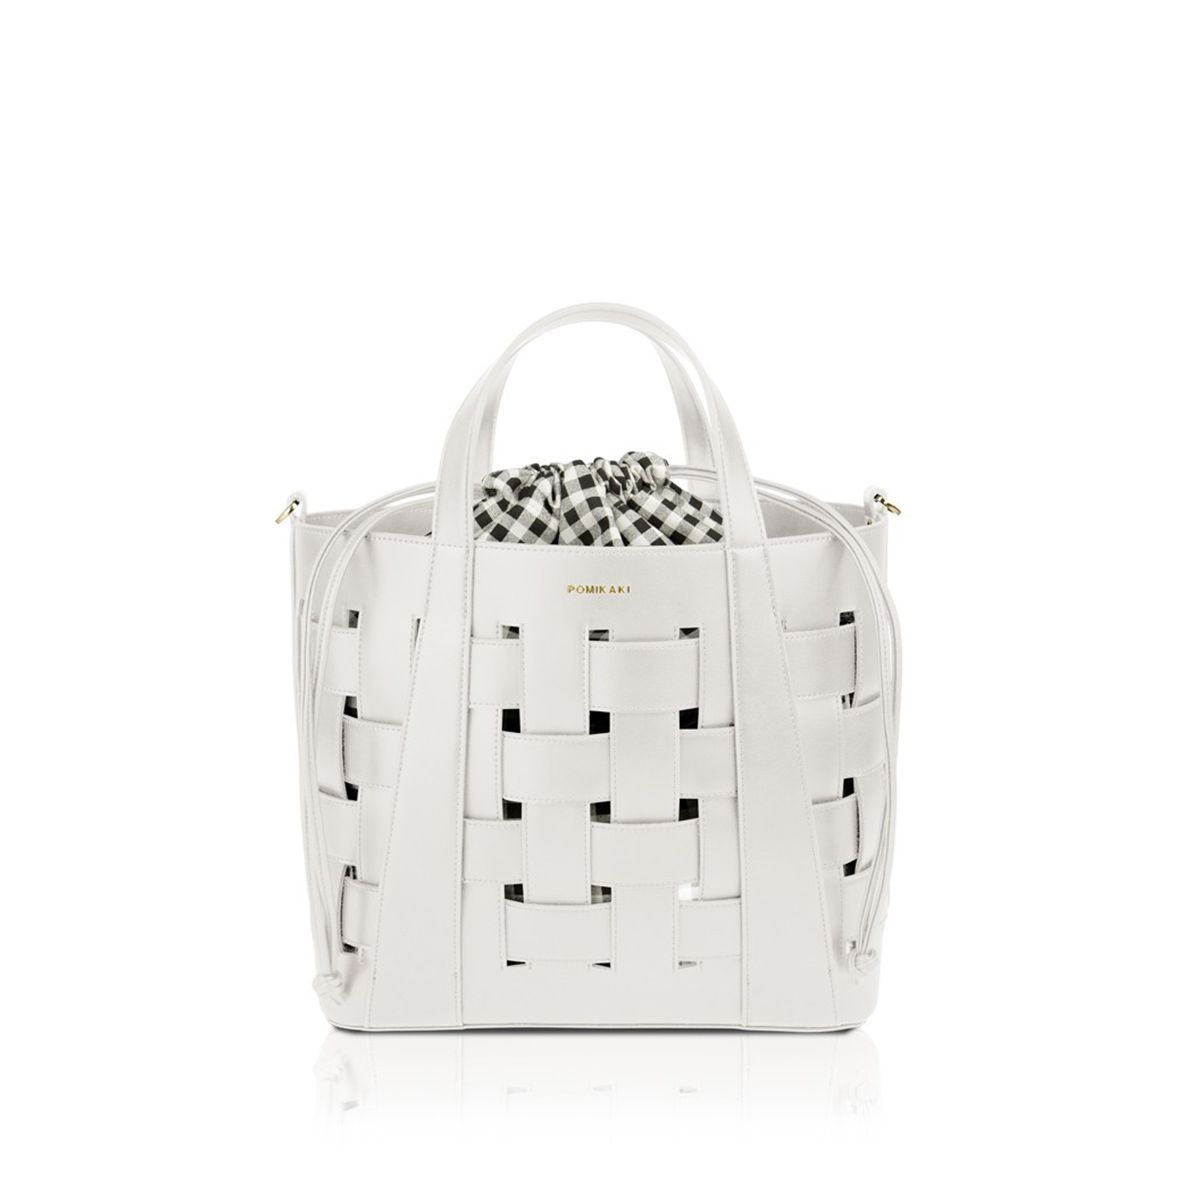 Shopper Ester Pomikaki WHITE